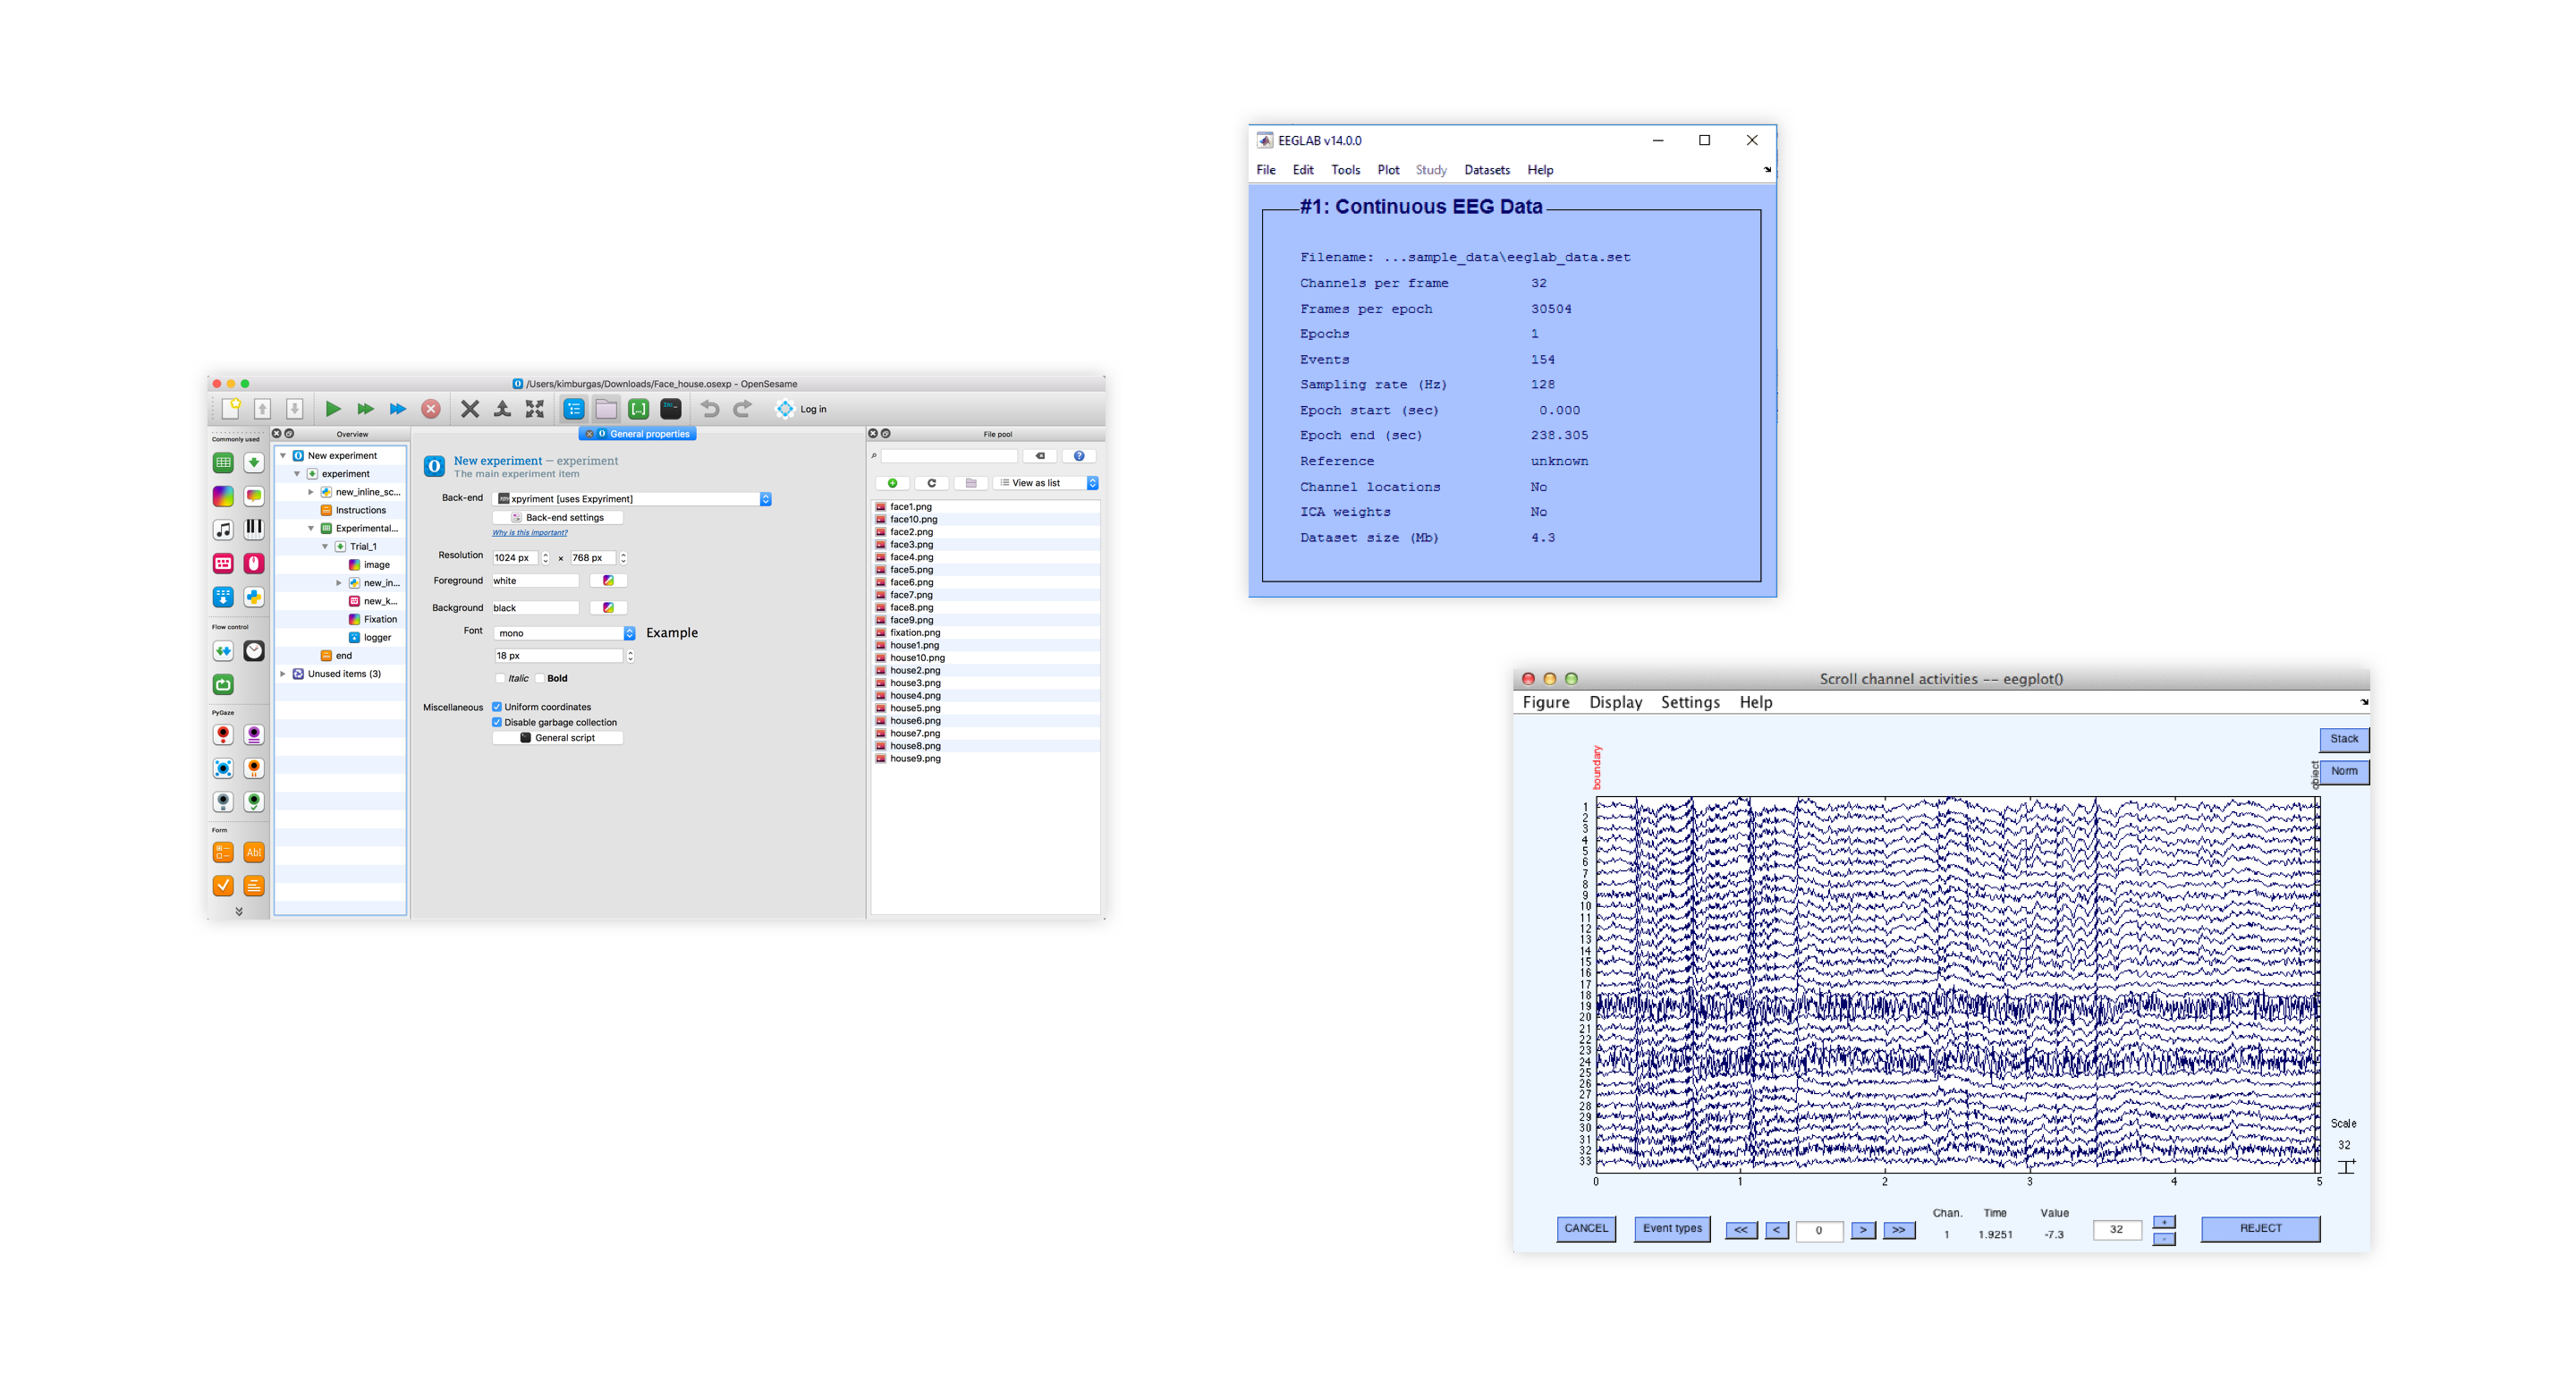 Three screenshots of software used to design and conduct EEG experiments. On the far left, a screenshot of the OpenSesame software. In the middle, a screenshot of EEG Lab and on the right, EEG plot.